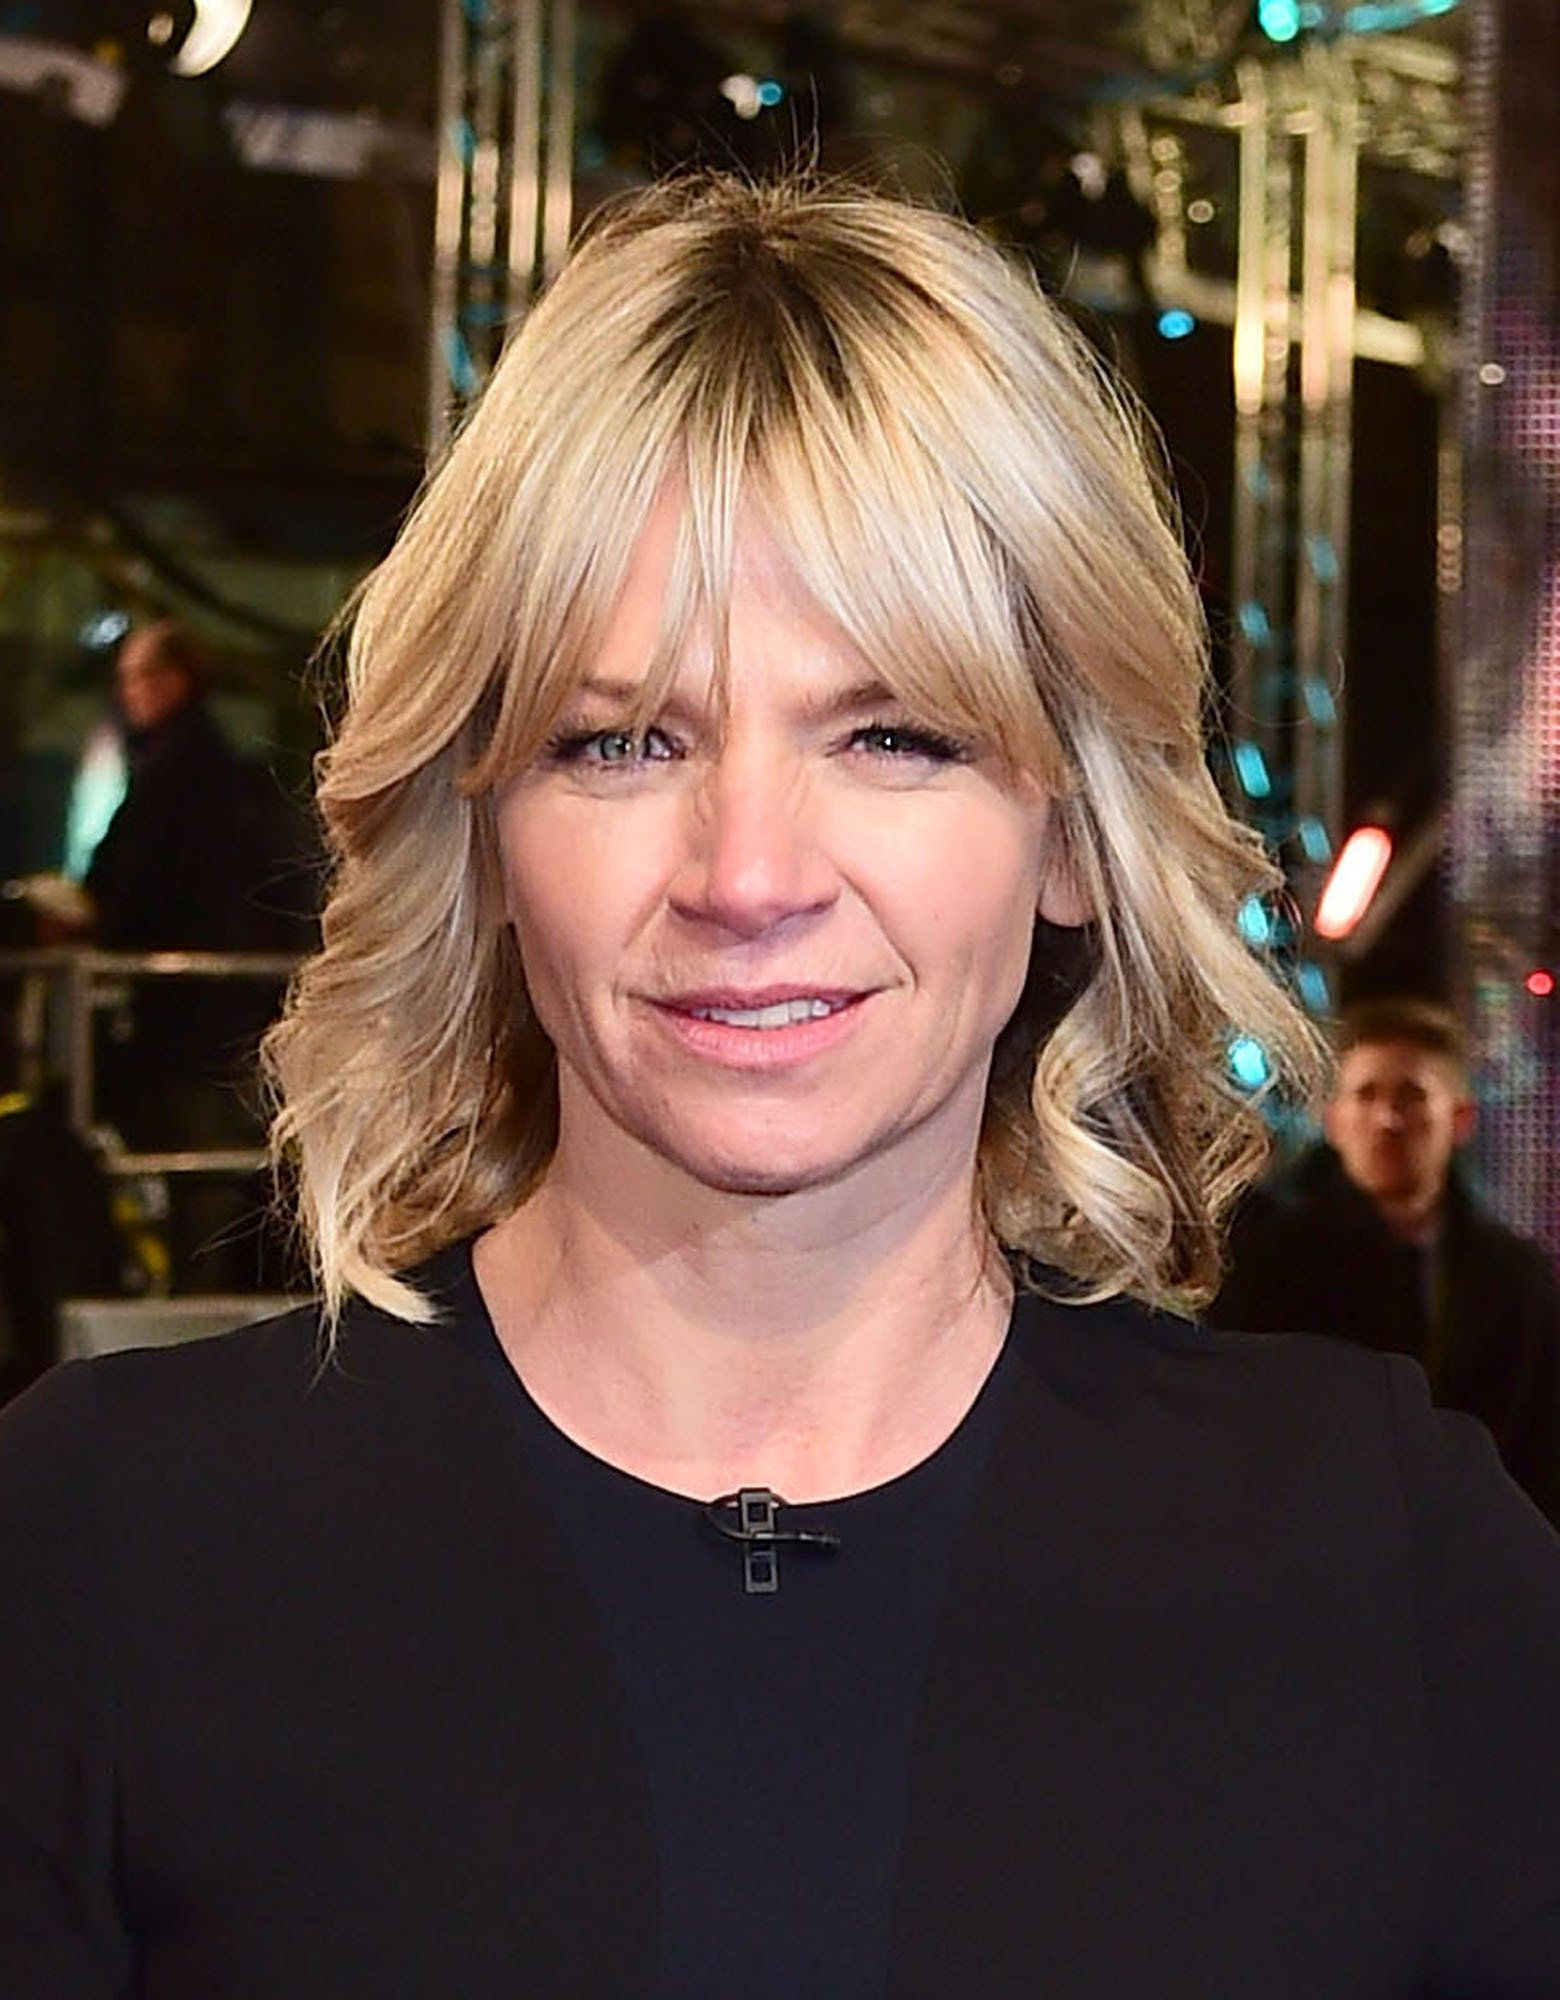 Zoe Ball 'Getting Stronger' Since Boyfriend's Suicide, After Accepting She 'Couldn't Save